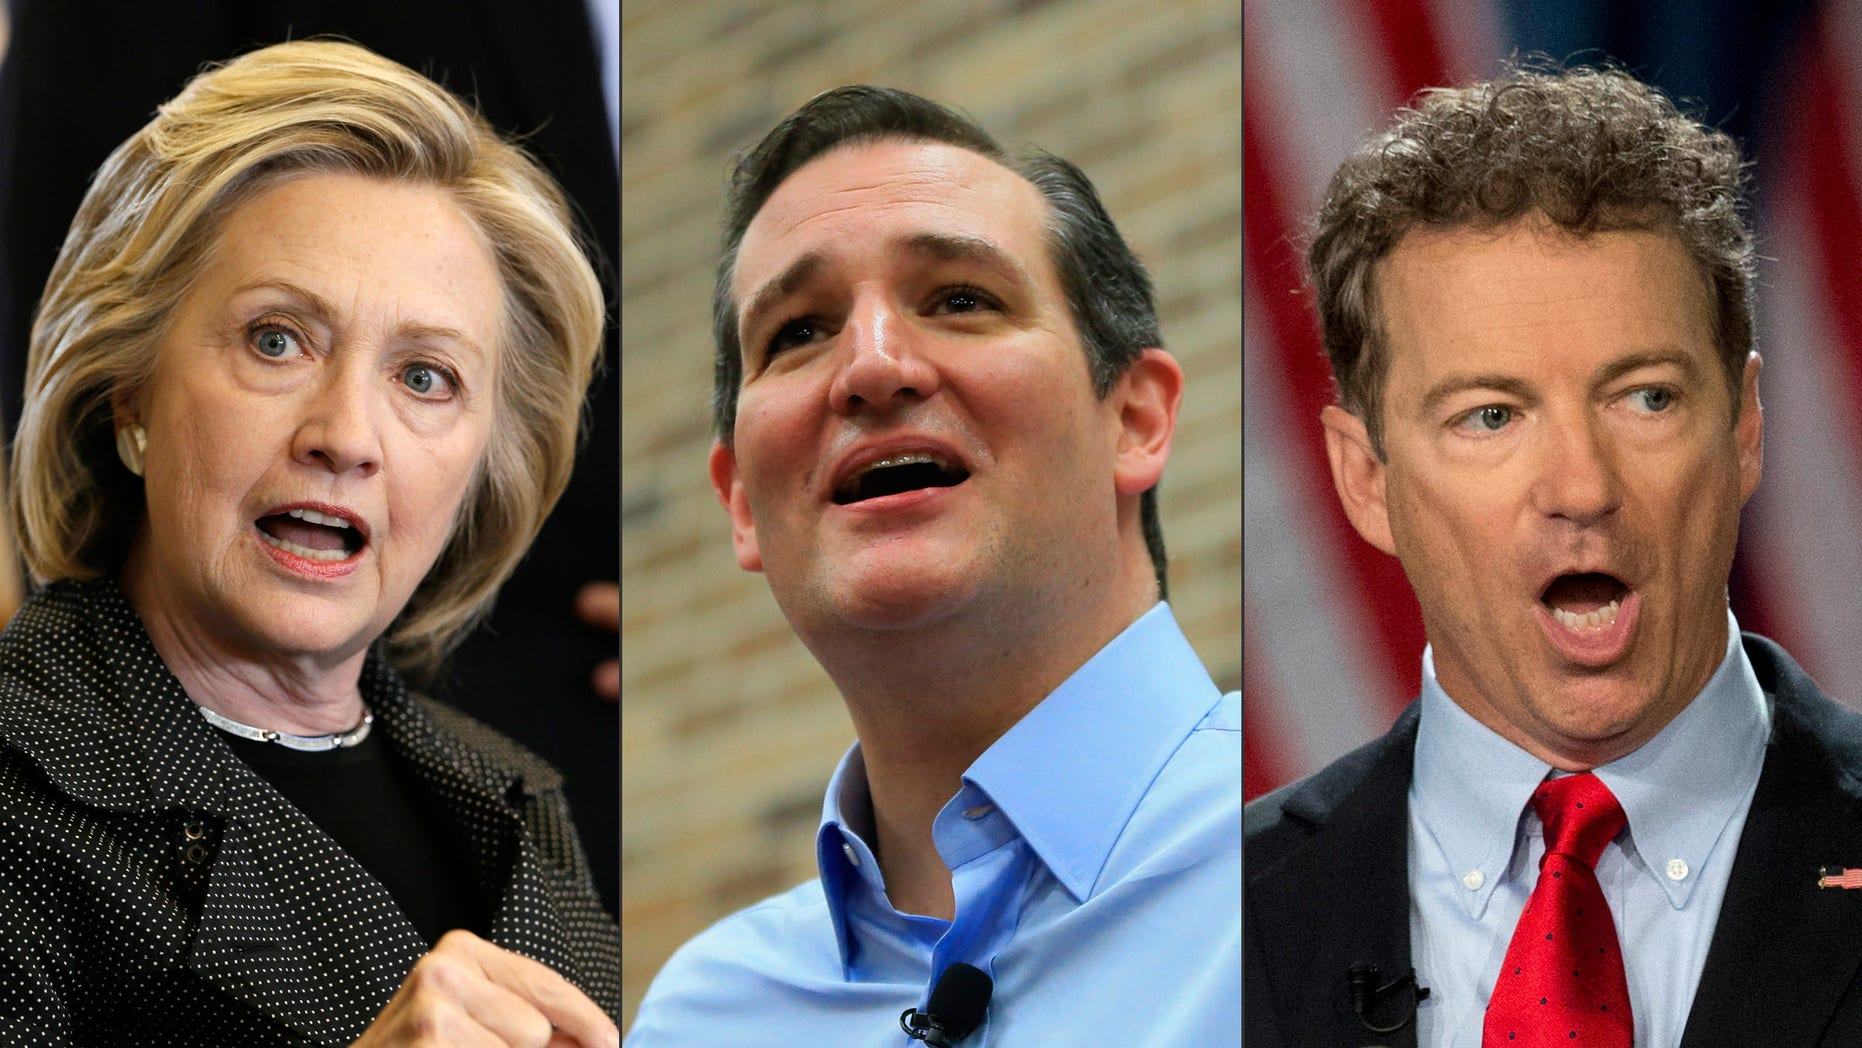 This photo combination shows, from left, Democratic presidential candidate Hillary Rodham Clinton, left, Republican presidential candidate, U.S. Sen. Ted Cruz, of Texas, and Republican presidential candidate Rand Paul, of Kentucky. Small businesses arenât in the dire straits they were four years ago, but presidential candidates arenât letting go of an issue they think will get them votes. (AP Photo/Charlie Neibergall/Nati Harnik/Carloyn Kaster)